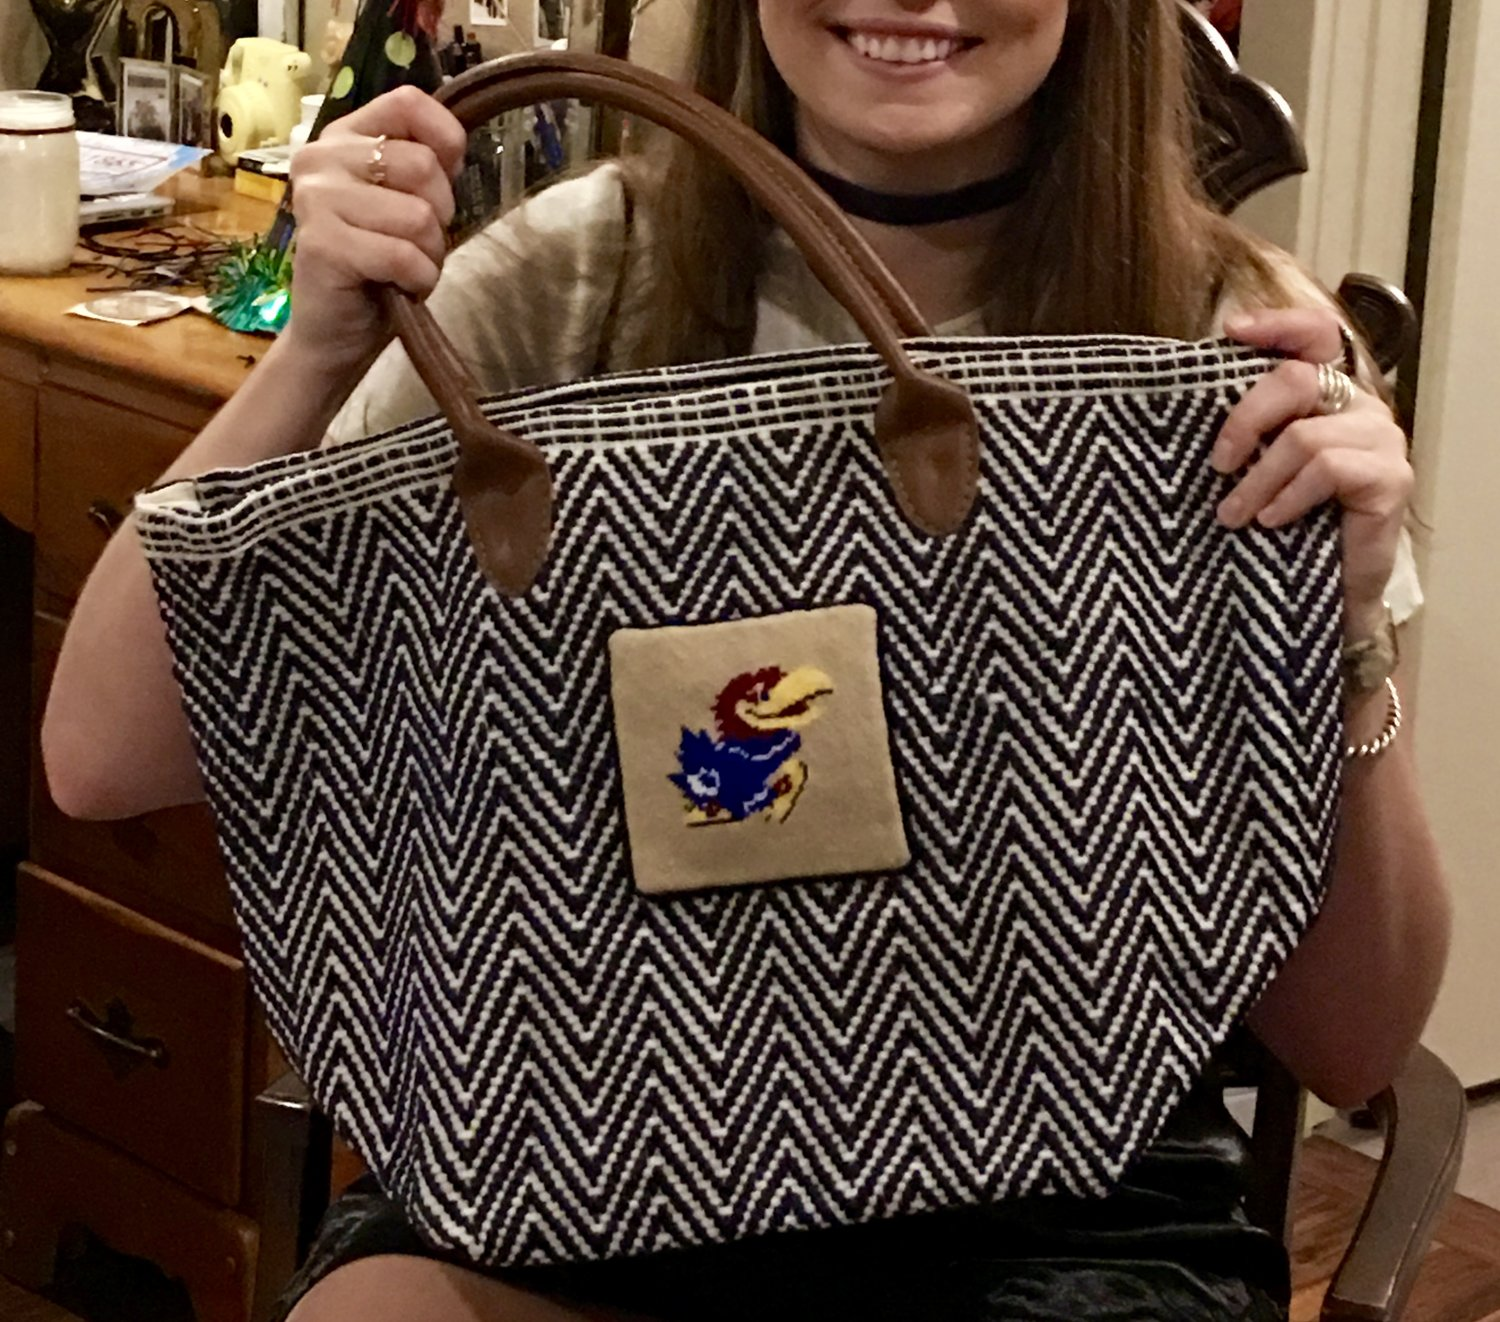 My first project from KC Needlepoint, getting back in the groove. It was a tote bag for my daughter who attends the University of Kansas. She loved it!